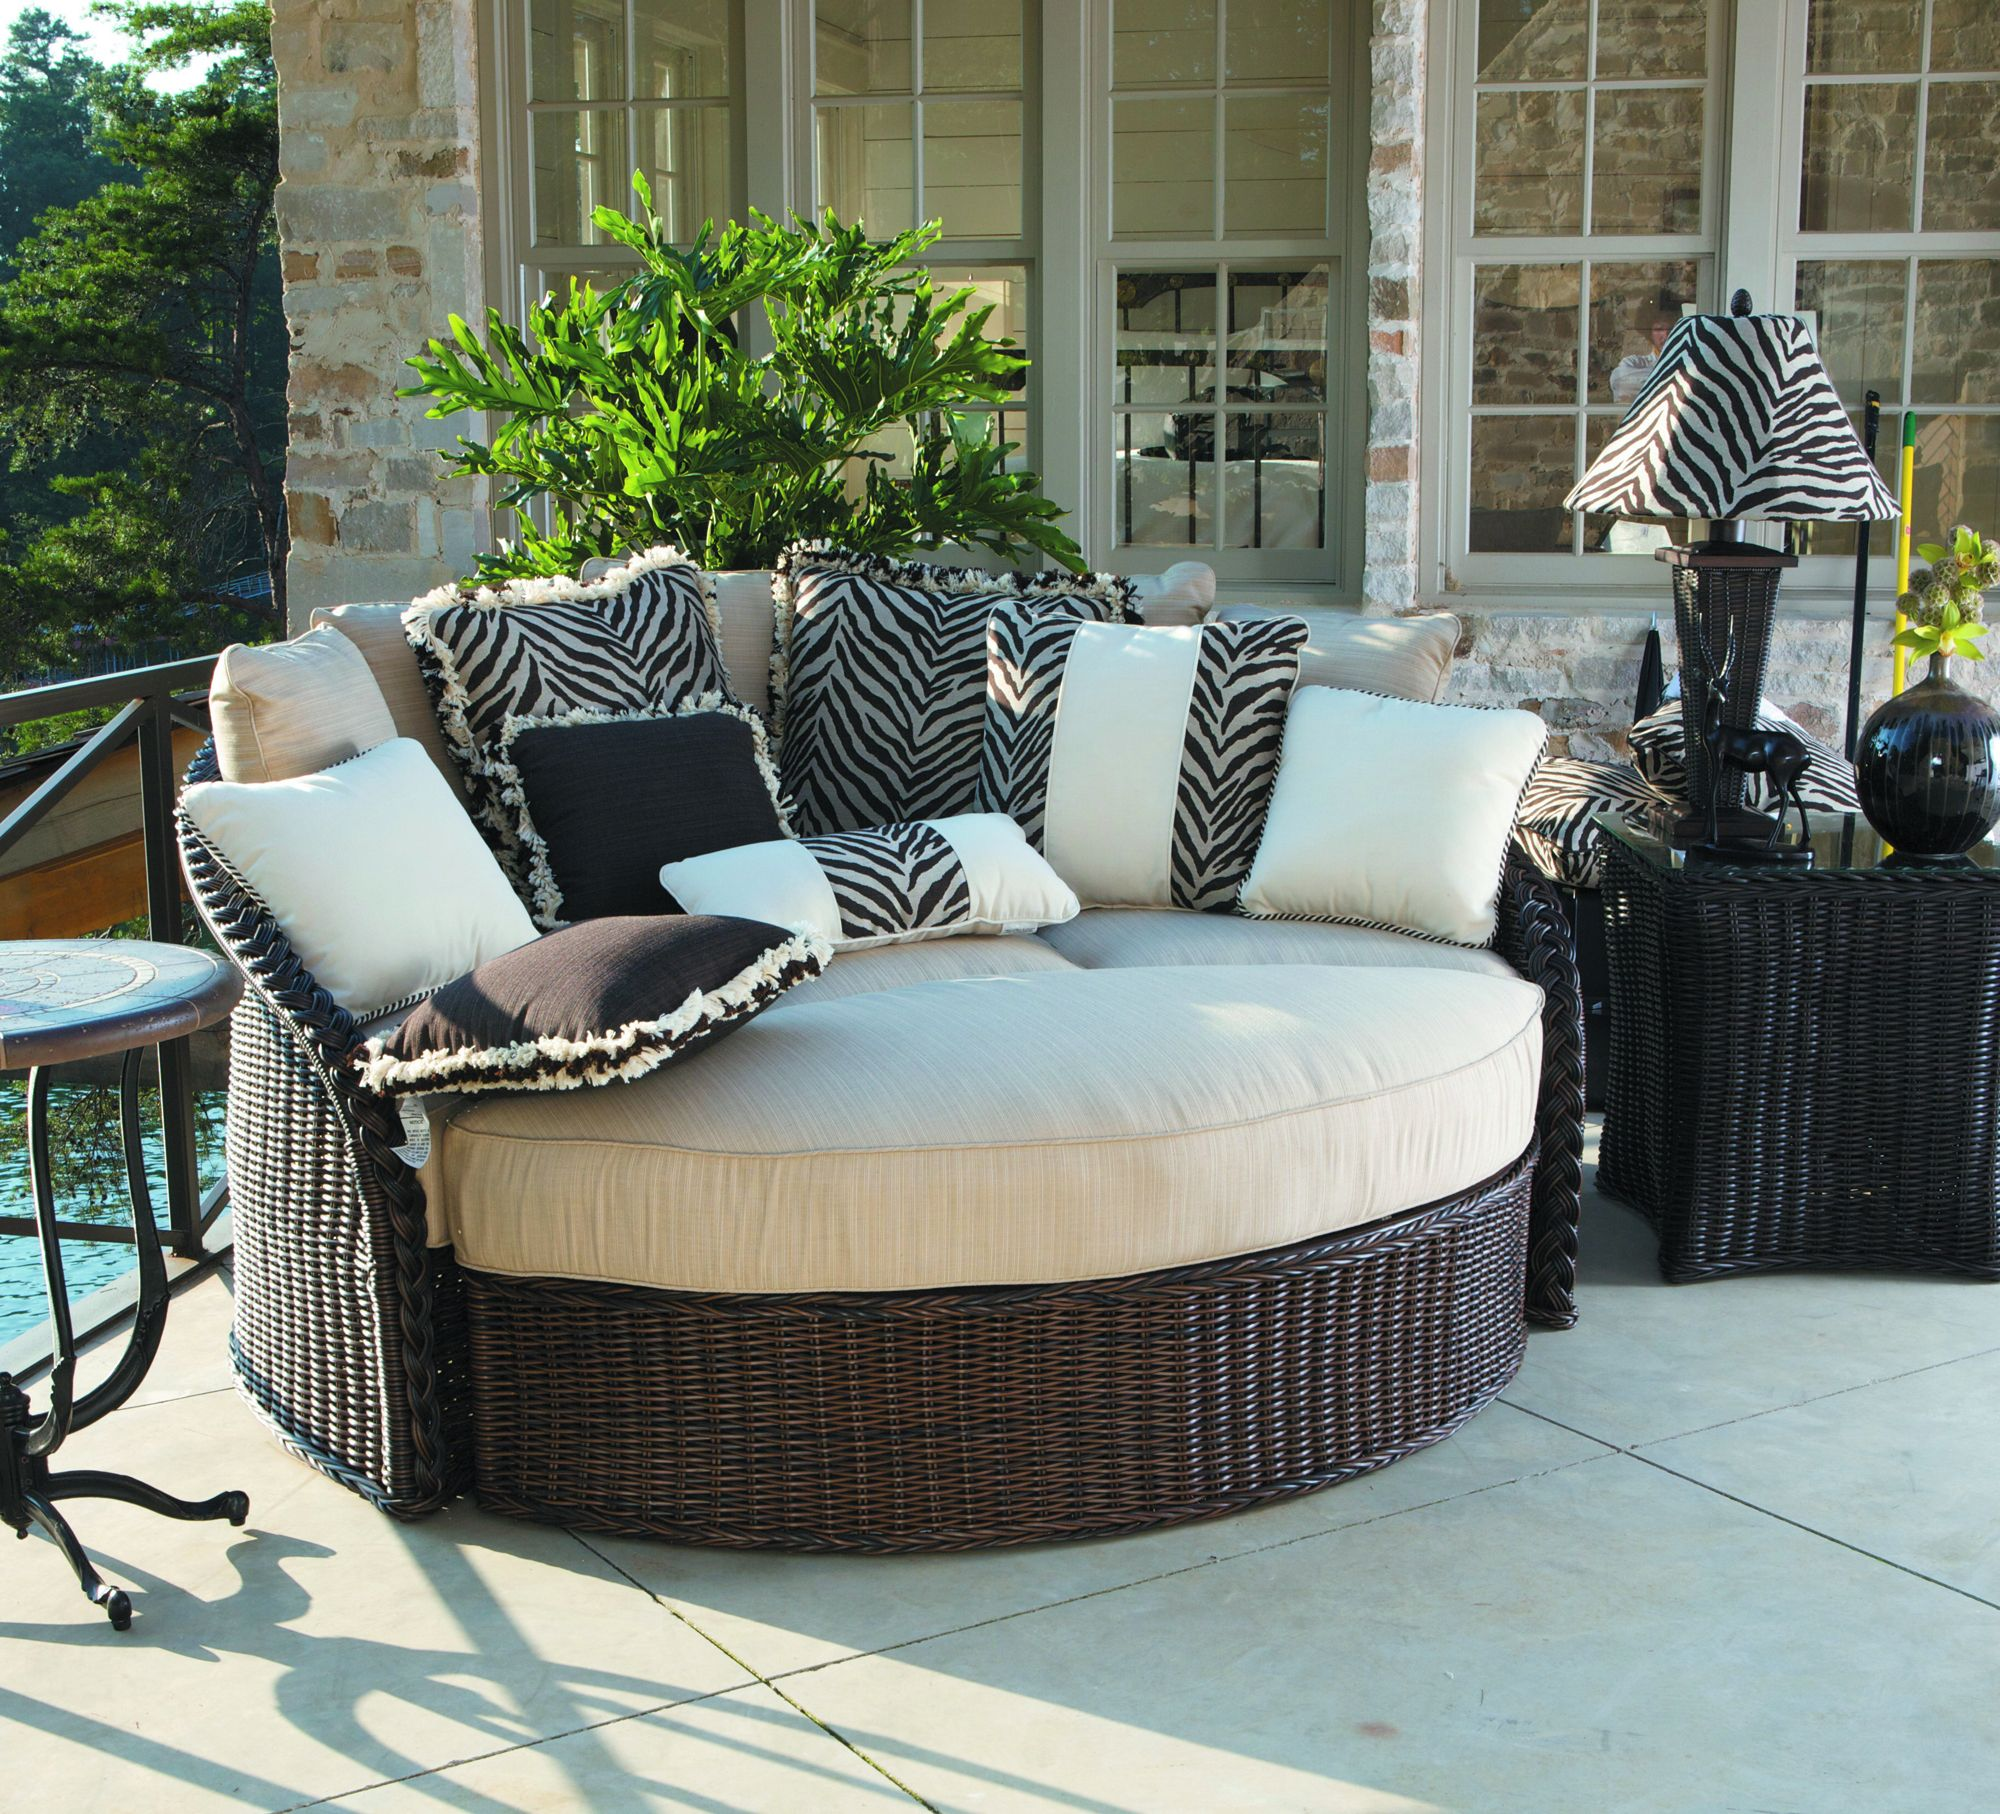 Beautiful Day Bed From Sedona Outdoor Collection Made From A 6mm Hand Woven Round N Dura Resin Outdoor Balcony Furniture Balcony Furniture Outdoor Porch Bed